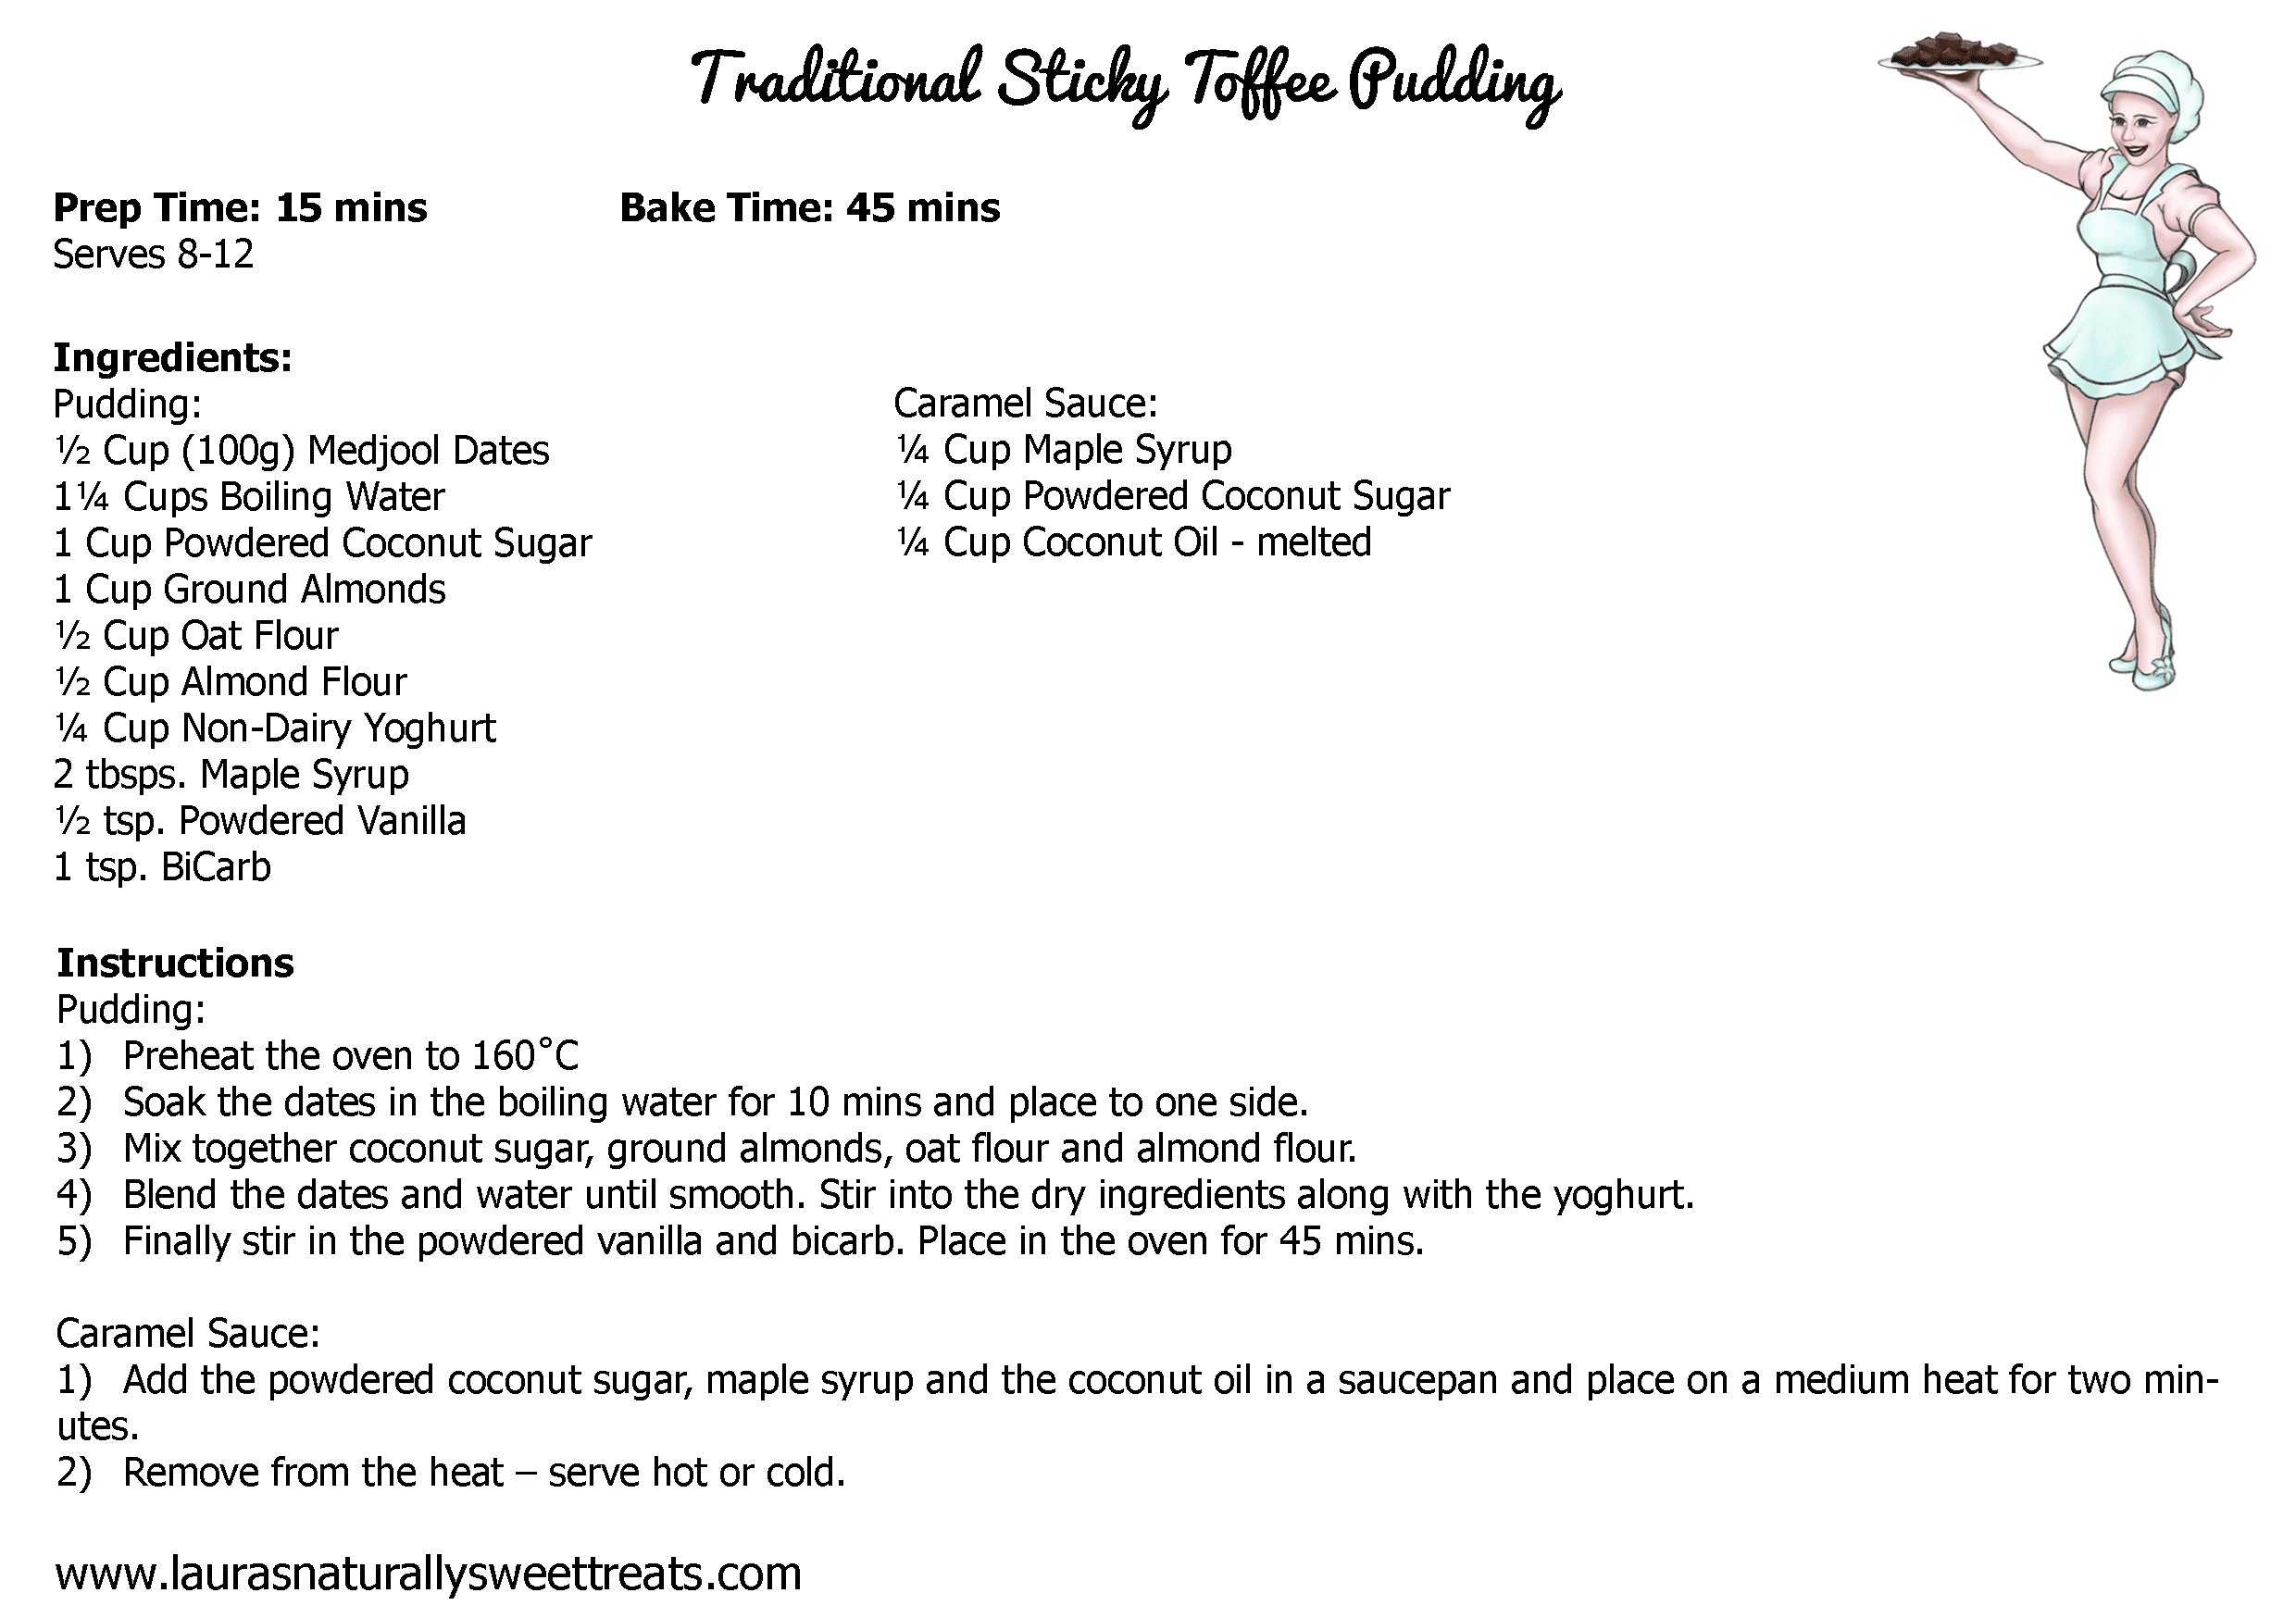 traditional sticky toffee pudding recipe card